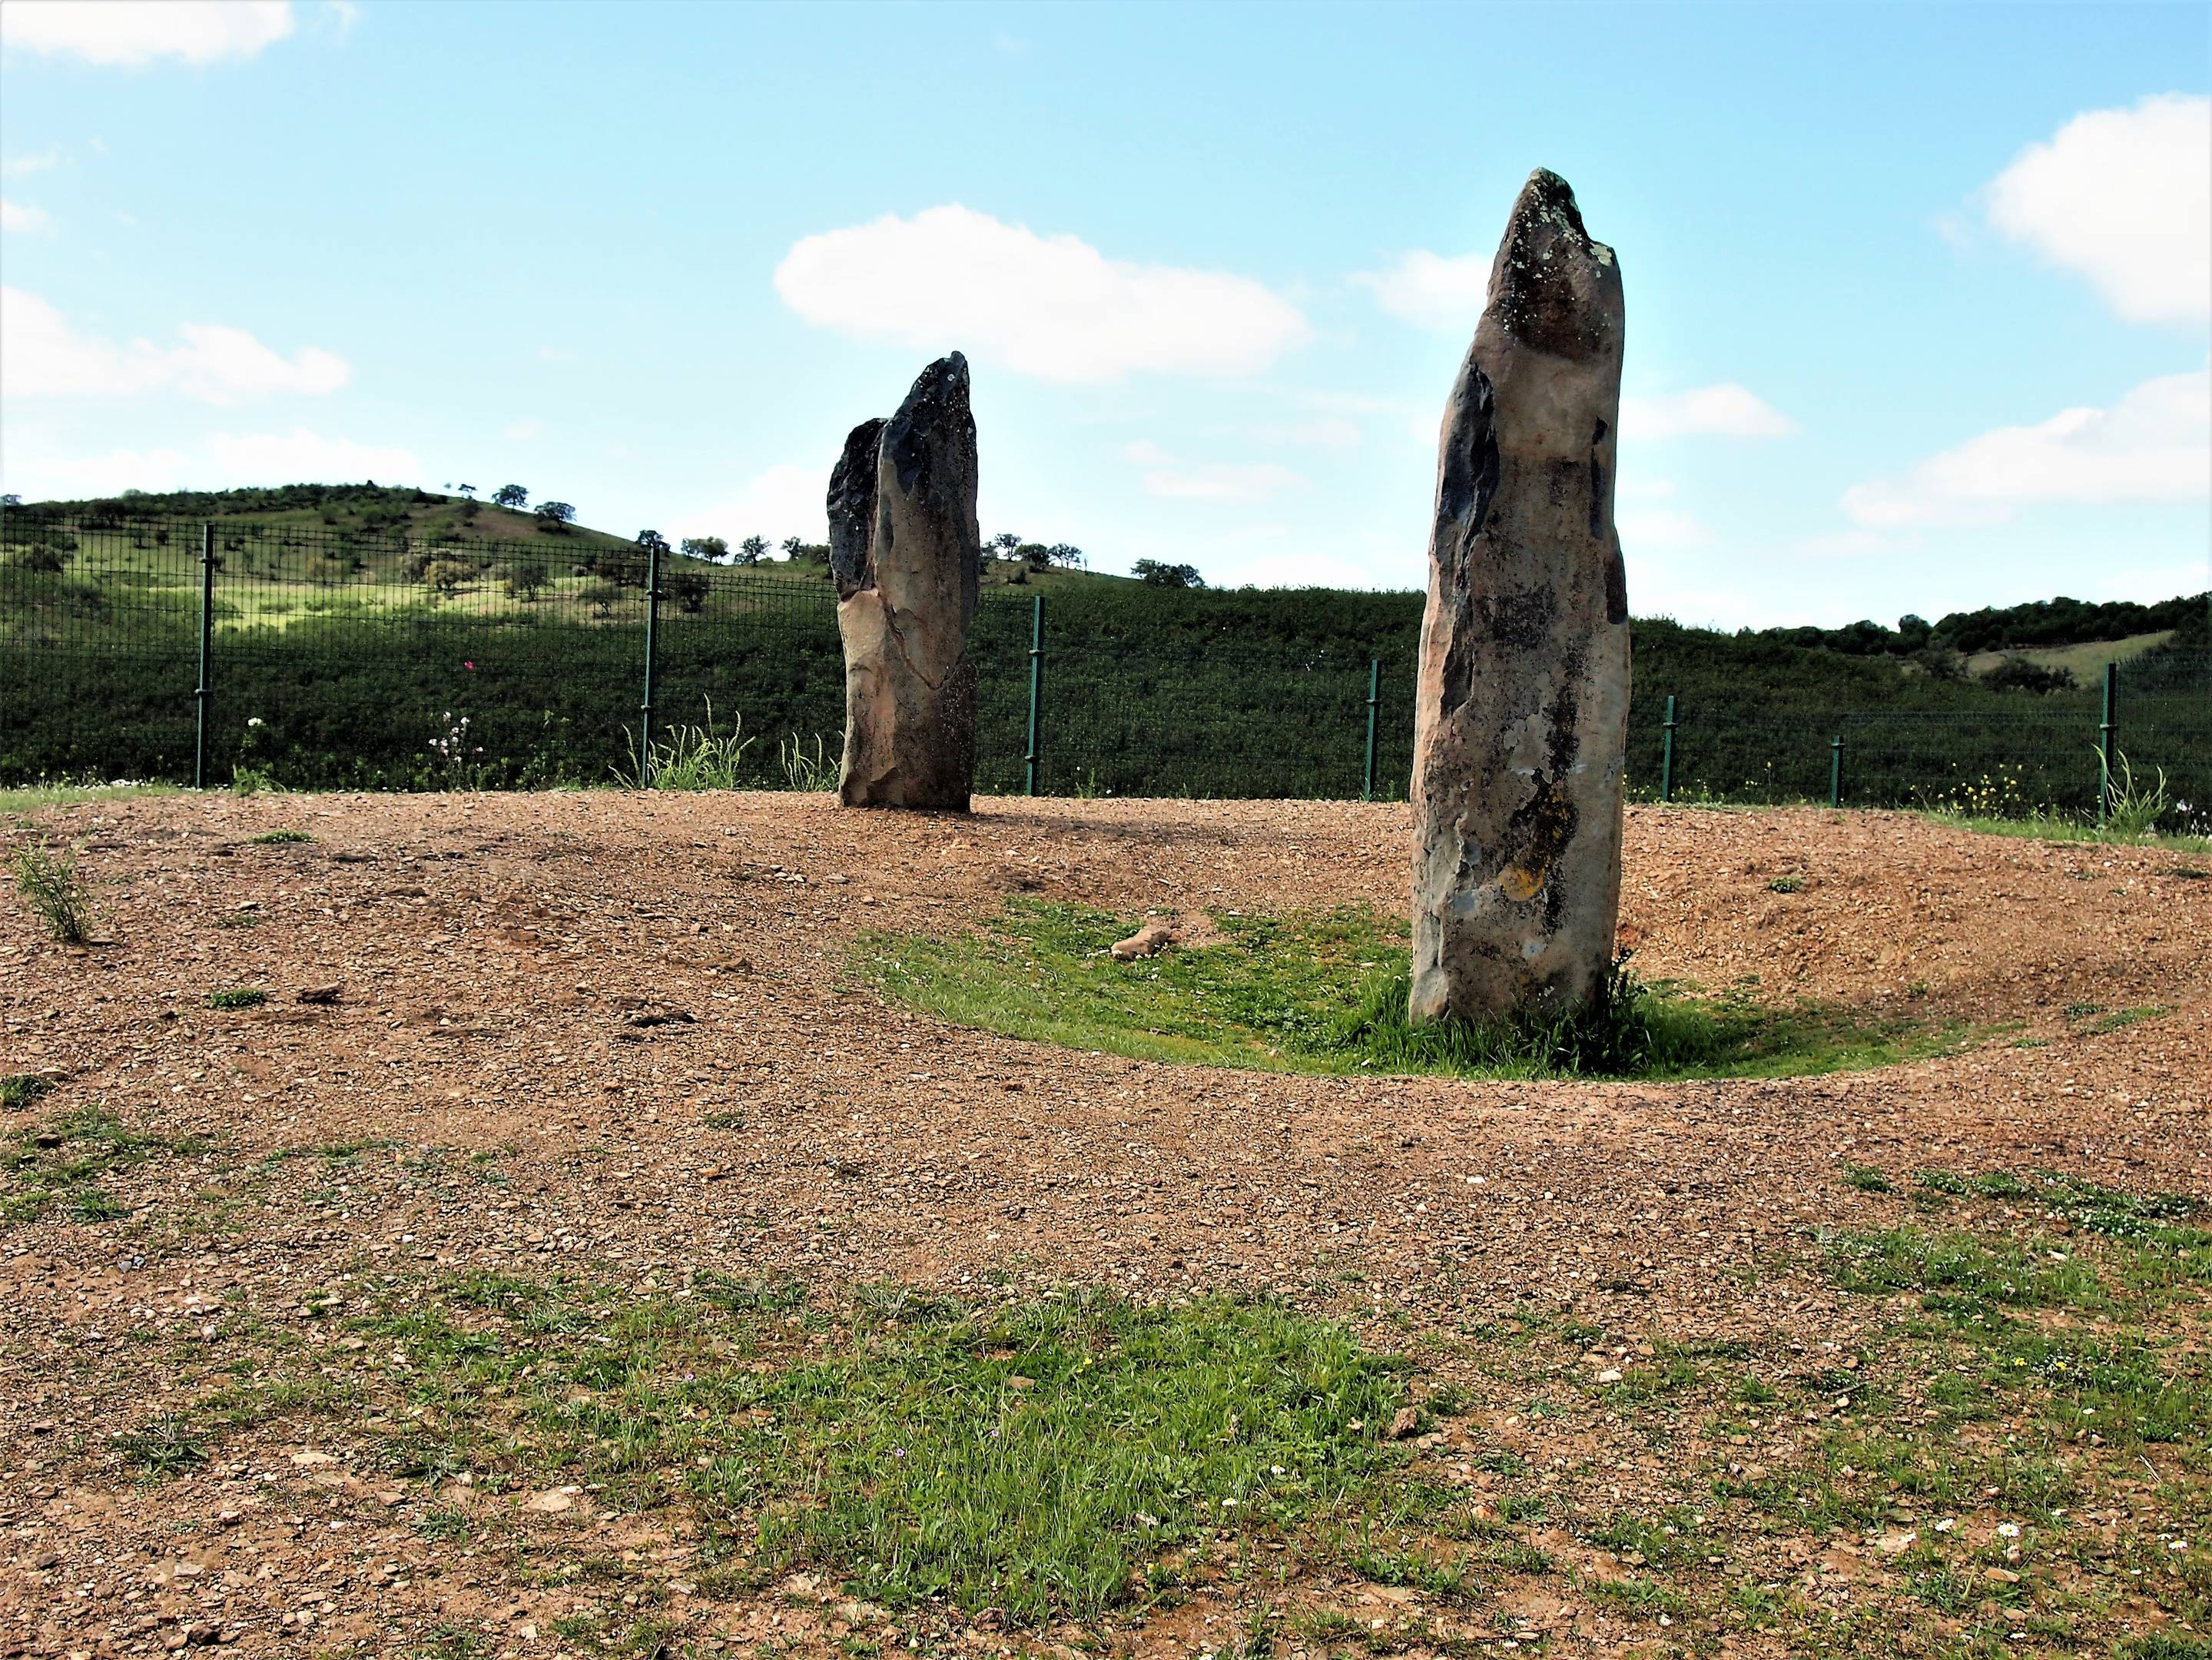 The menhirs of Lavajo - a short drive from Alcoutim, but only accessible by following a gravel track for 3km. Dated somewhere between 2800 BC and 3500 BC.